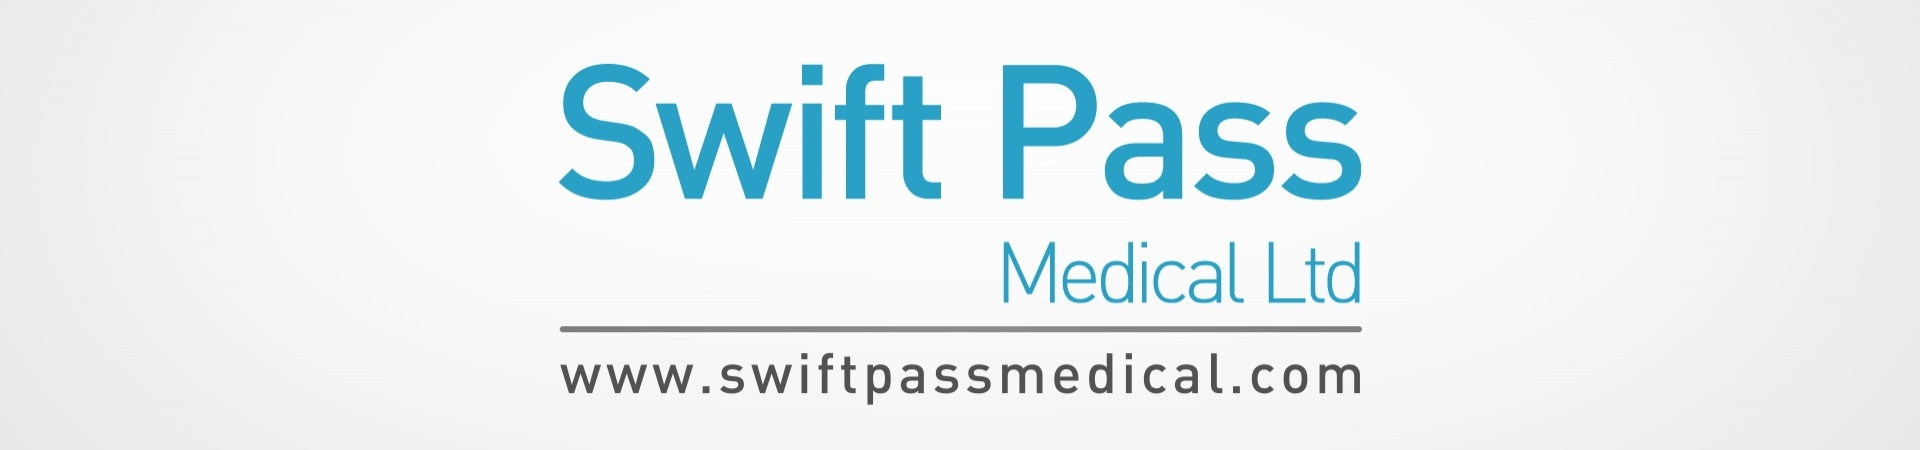 Swift-Pass Medical